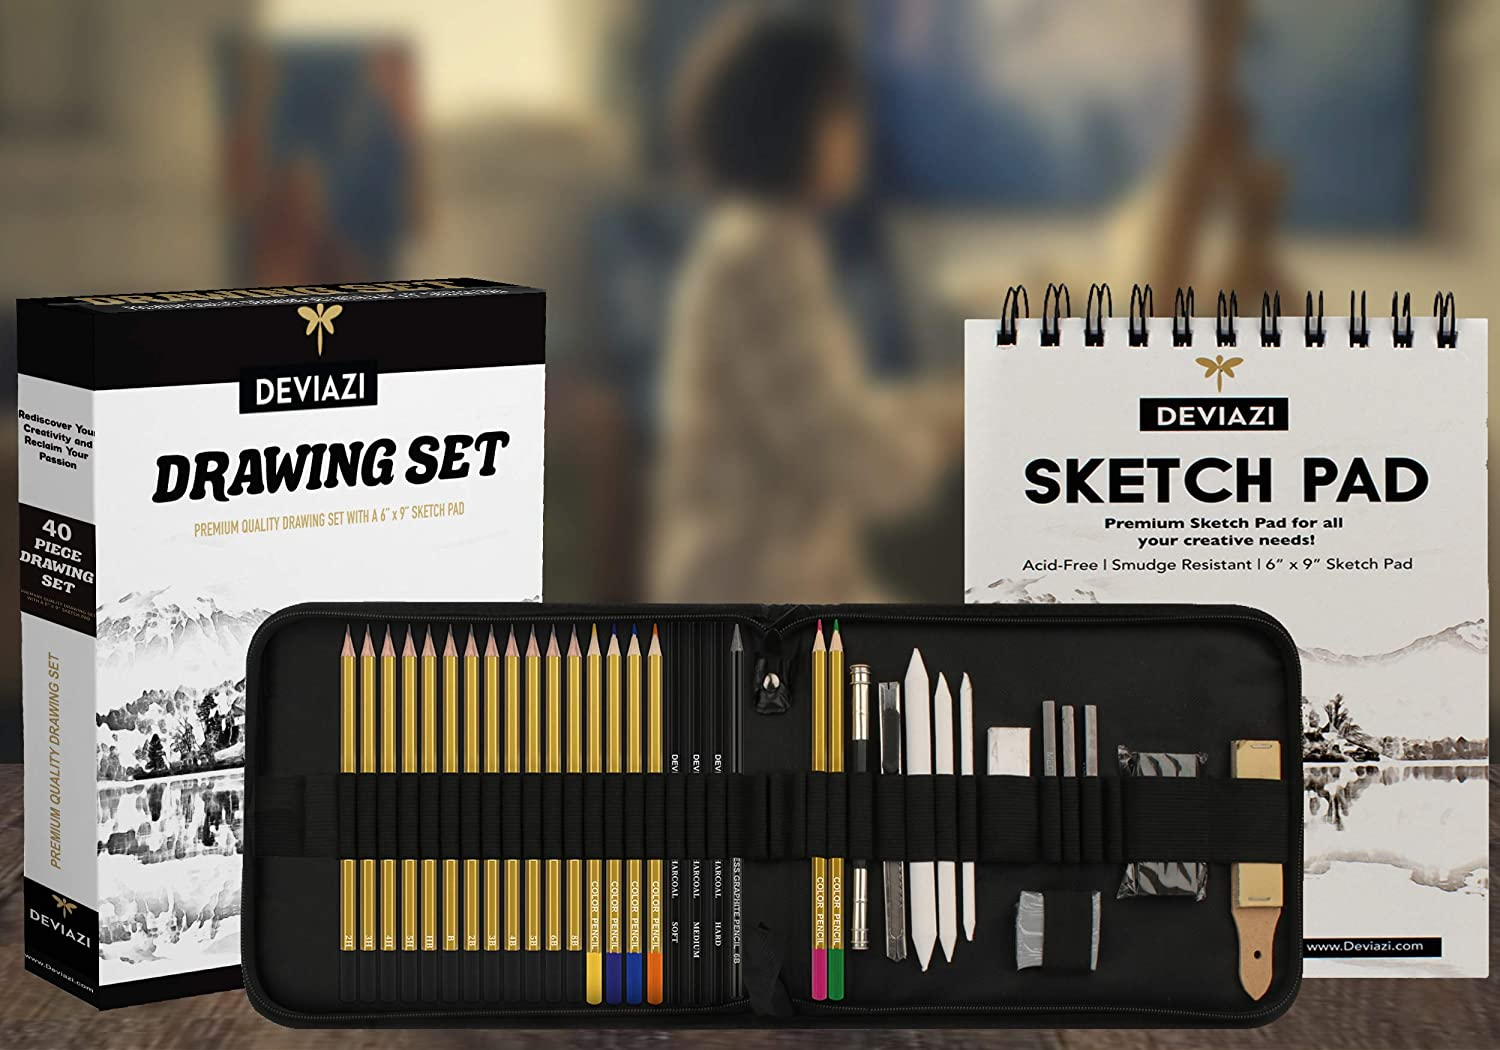 Deviazi (40-Piece Set) Drawing Artist Pencils Sketching Set. Includes Graphite, Charcoal Pencils, 100 Page Drawing Pad, Kneaded Eraser, Blending Stump with Travel case for Kids, Teens and Adults. : Office Products